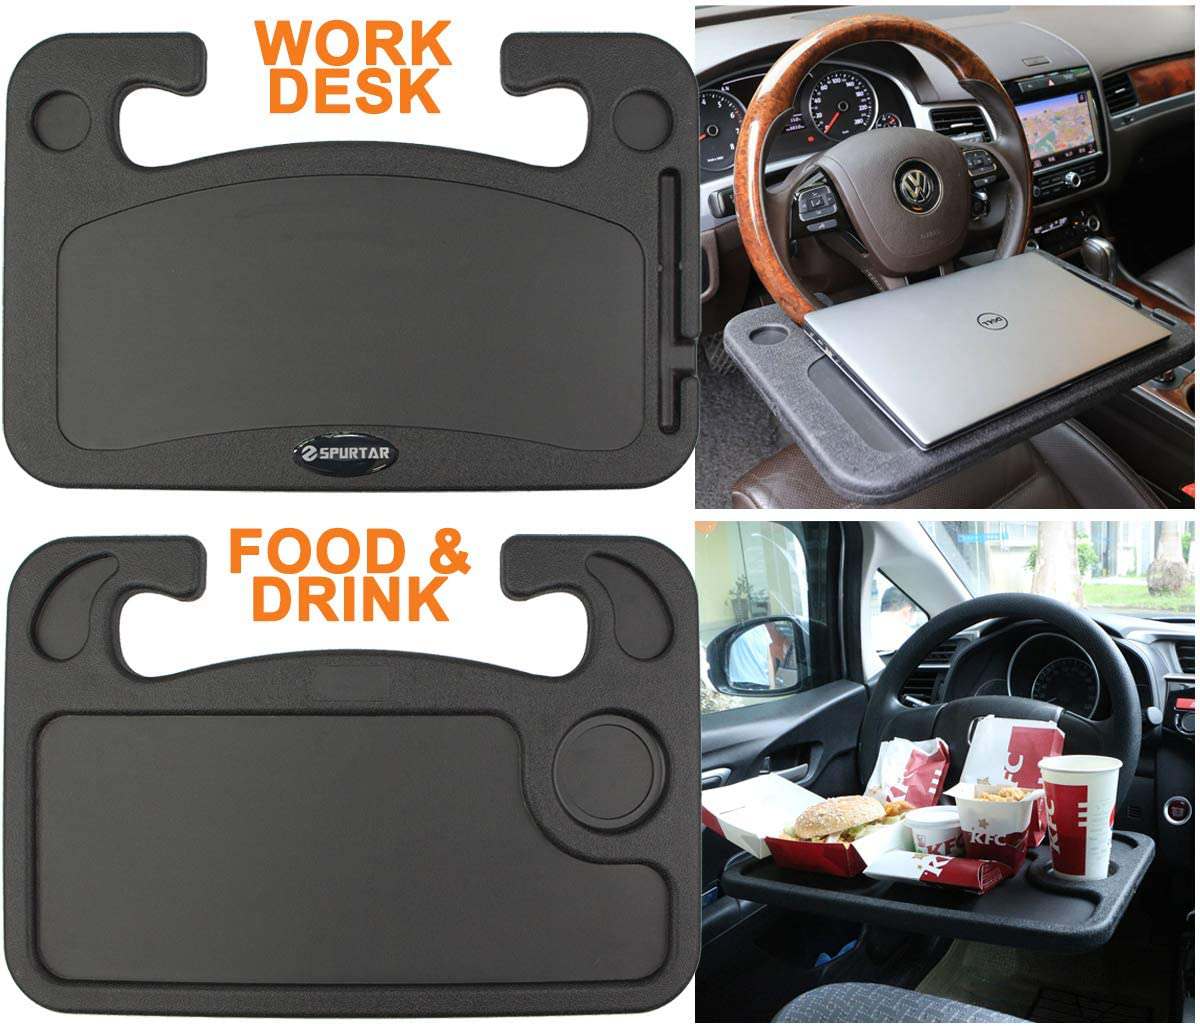 Car Steering Wheel Tray Desk Two Sided for Laptop Food Drink Work Table Holder | eBay